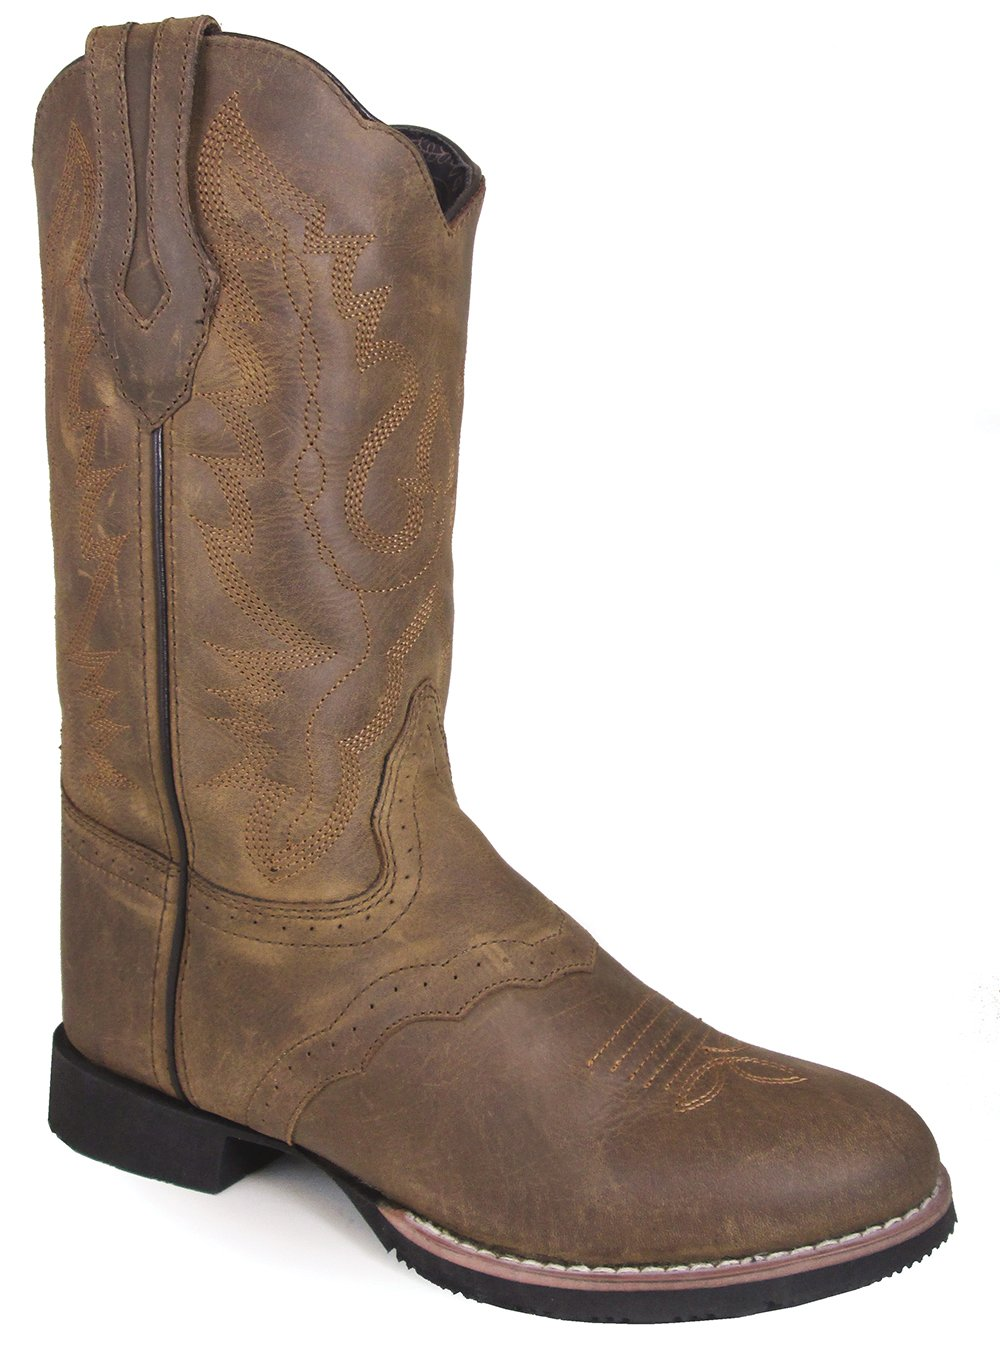 Smoky Mountain Women's Showdown Boot B01N41DMTN 7.5 B(M) US|Brown Distress